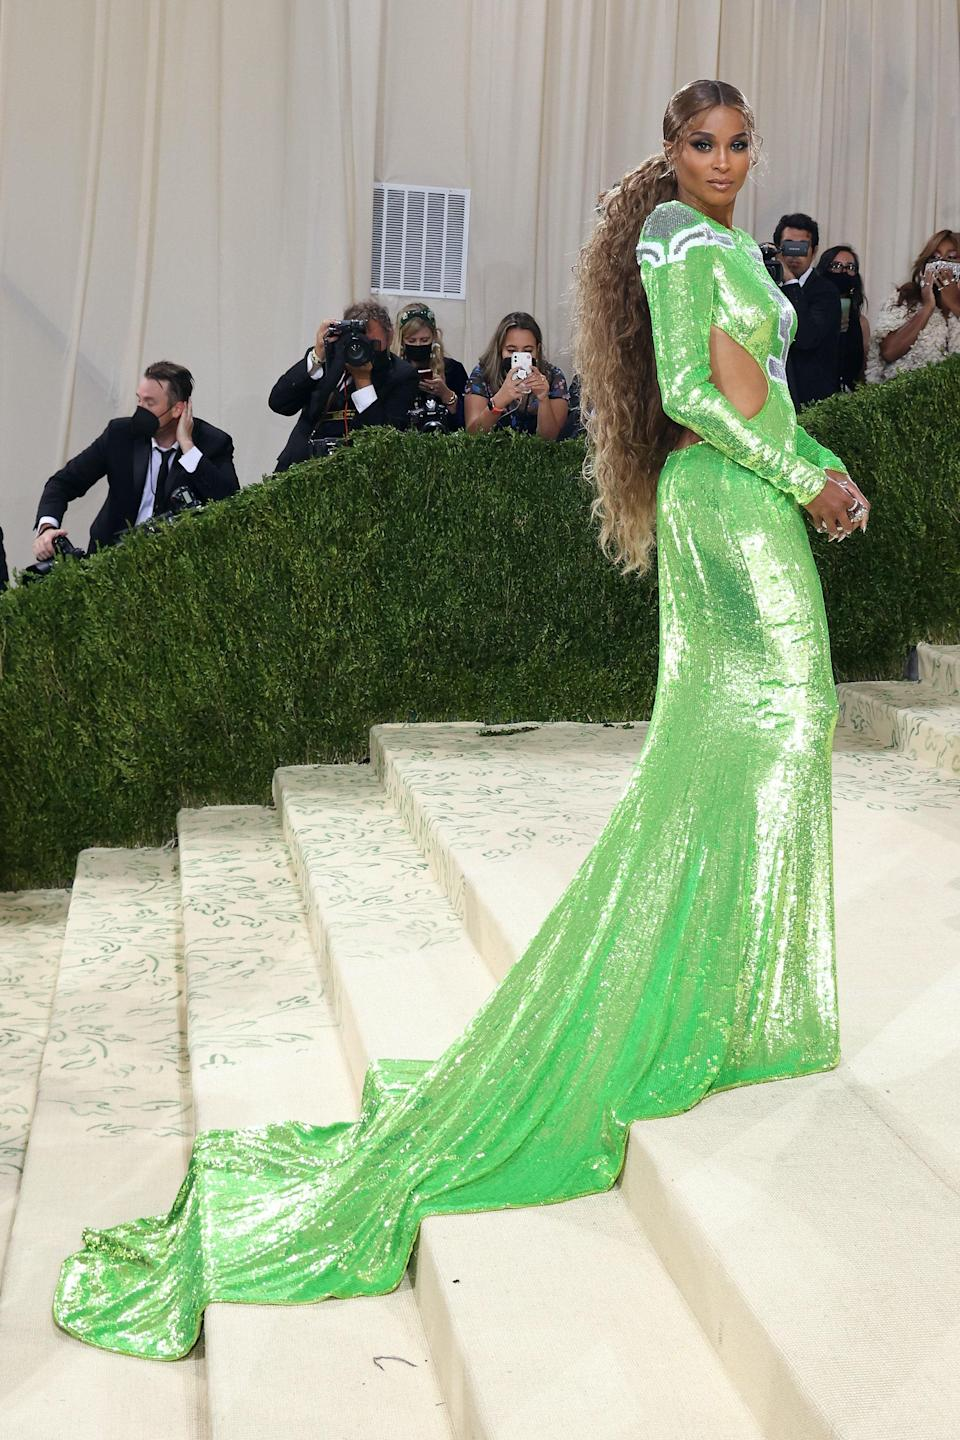 It doesn't get more American than football. Singer Ciara arrived wearing a lime sequin Peter Dundas dress inspired by her husband's team, the Seahawks.